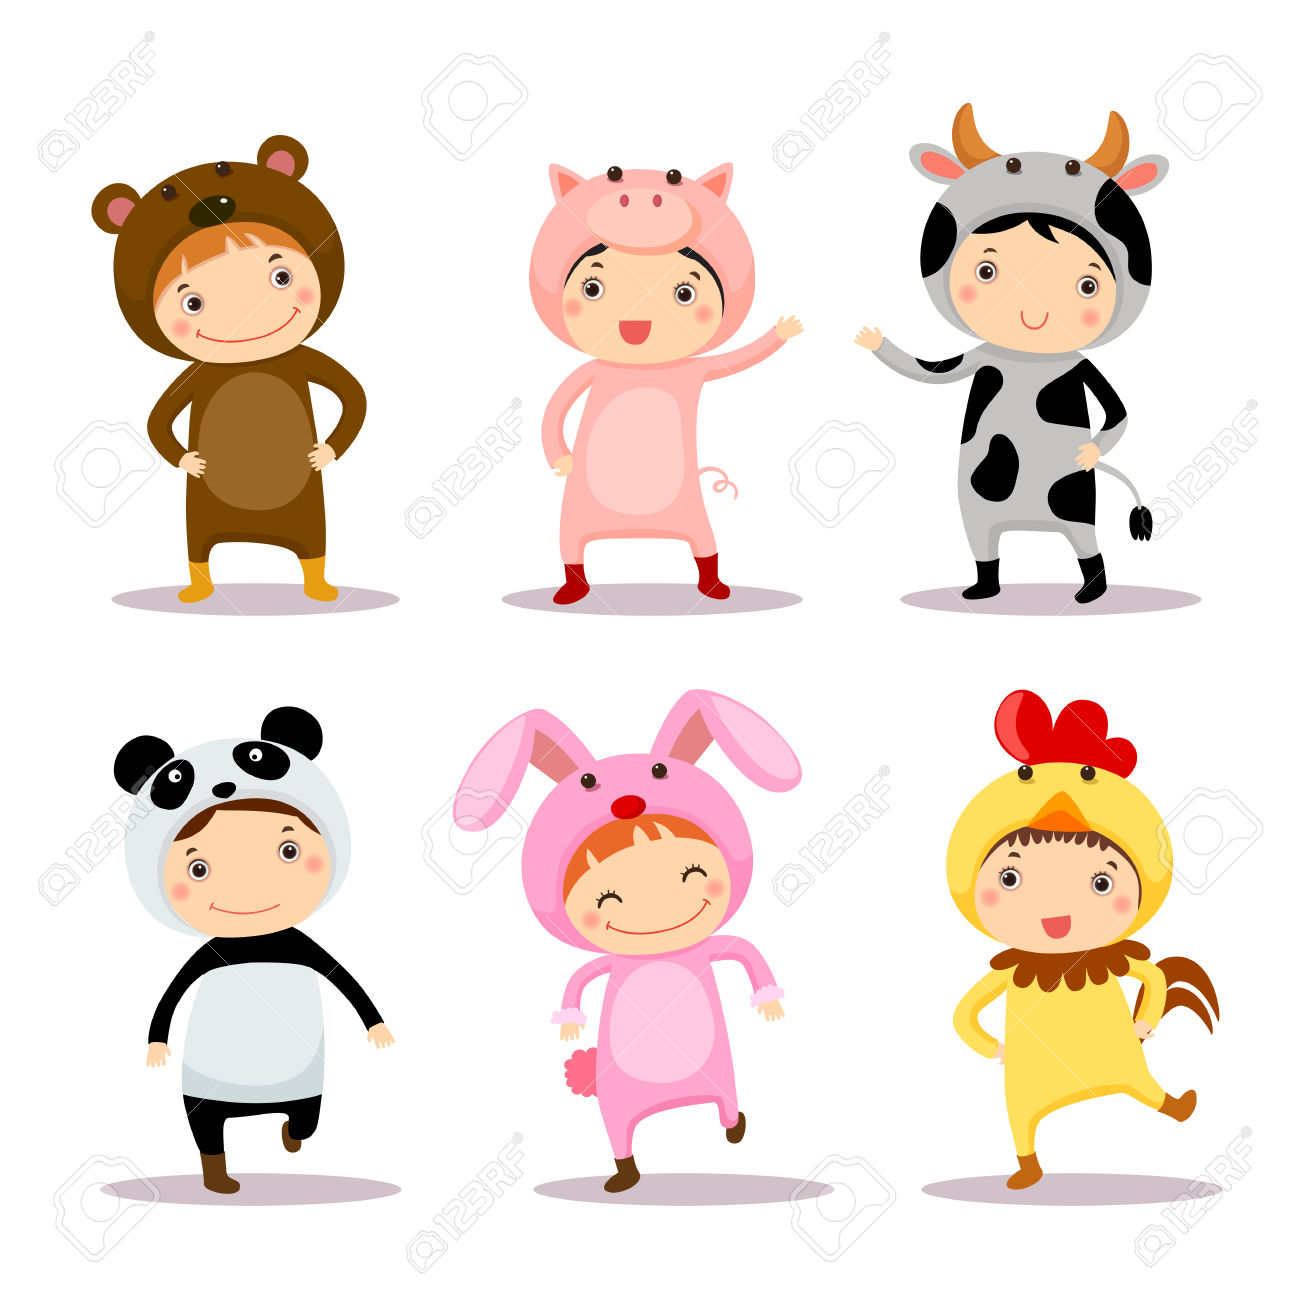 boy and girl wearing costumes clipart free clipground french poodle clip art images french poodle clipart images